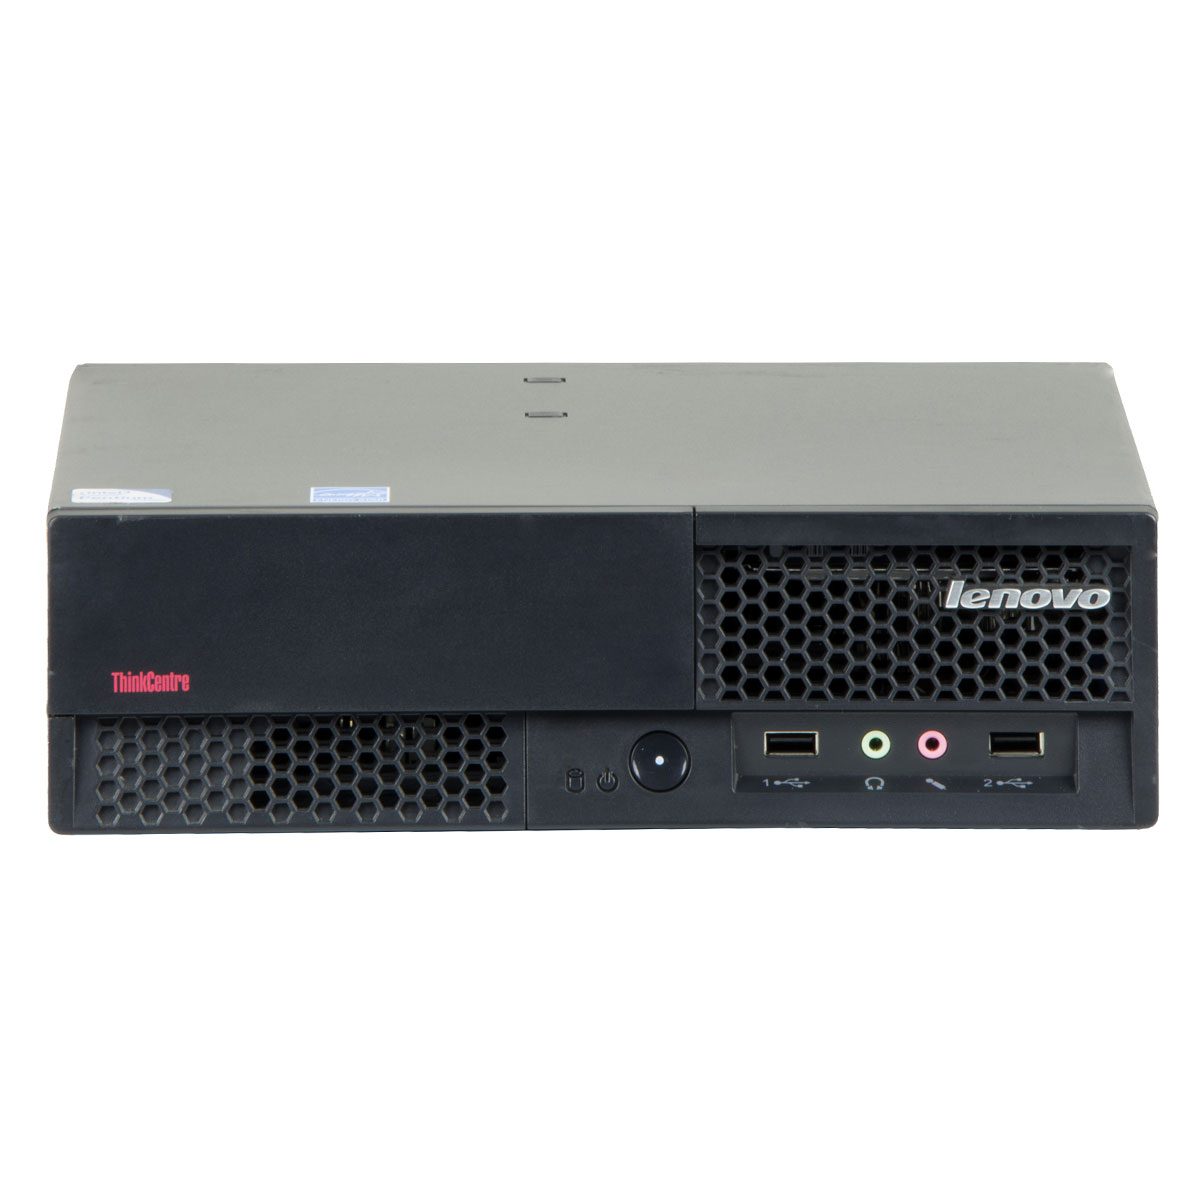 Lenovo Thinkcentre M58p Intel C2d E8400 3.00 Ghz 4 Gb Ddr 3 Sodimm 160 Gb Hdd Dvd-rw Usdt